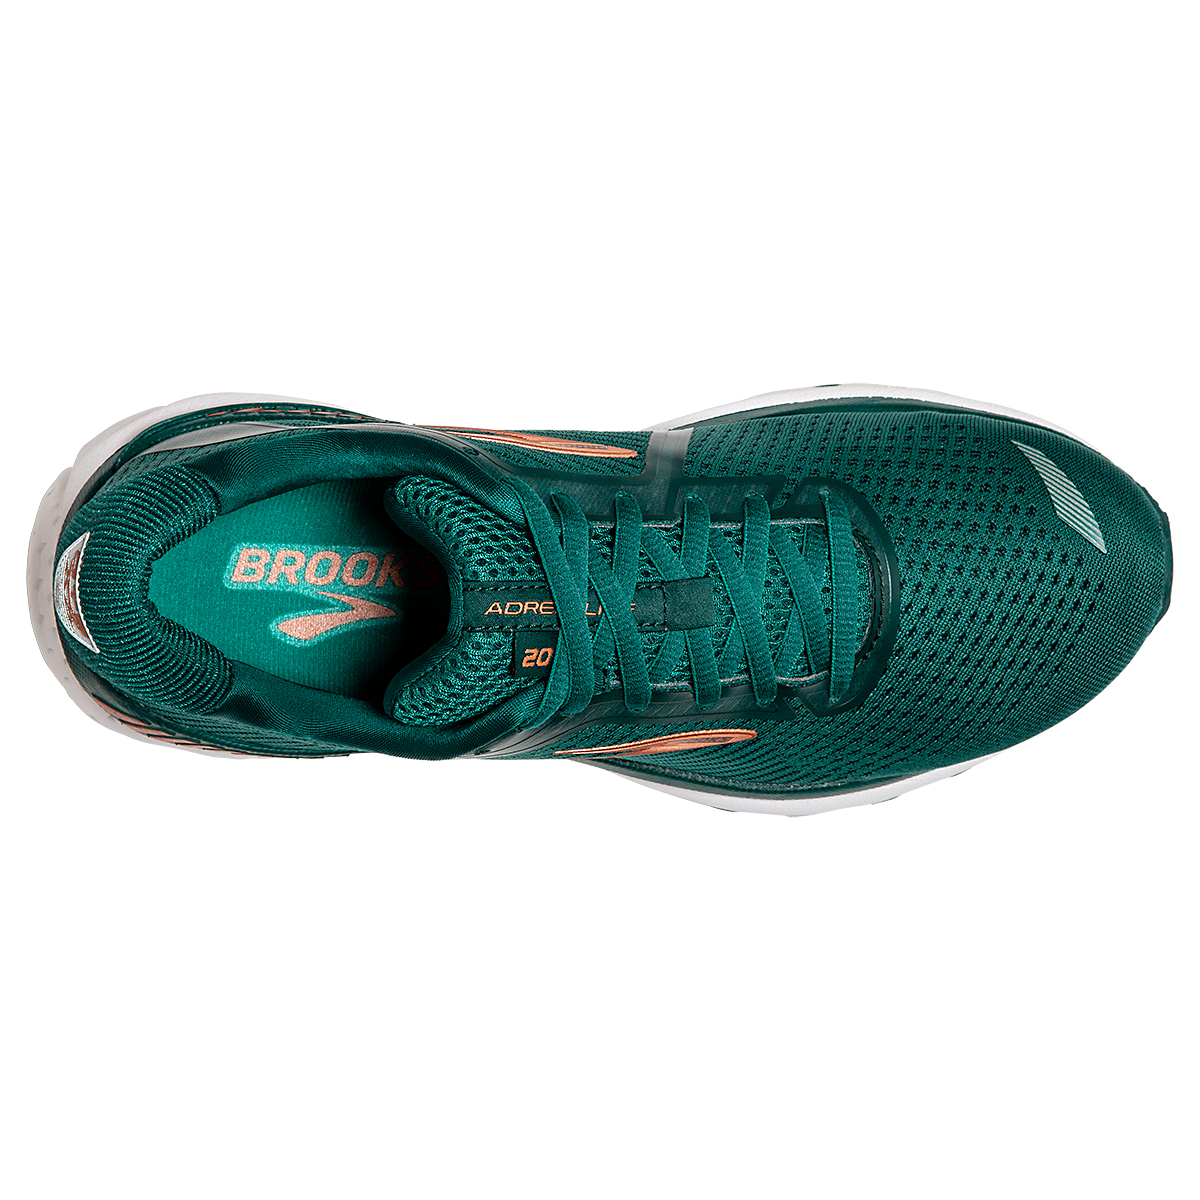 Women's Brooks Adrenaline GTS 20 Running Shoe - Color: Green/Teal/Copper - Size: 5 - Width: Regular, Green/Teal/Copper, large, image 2